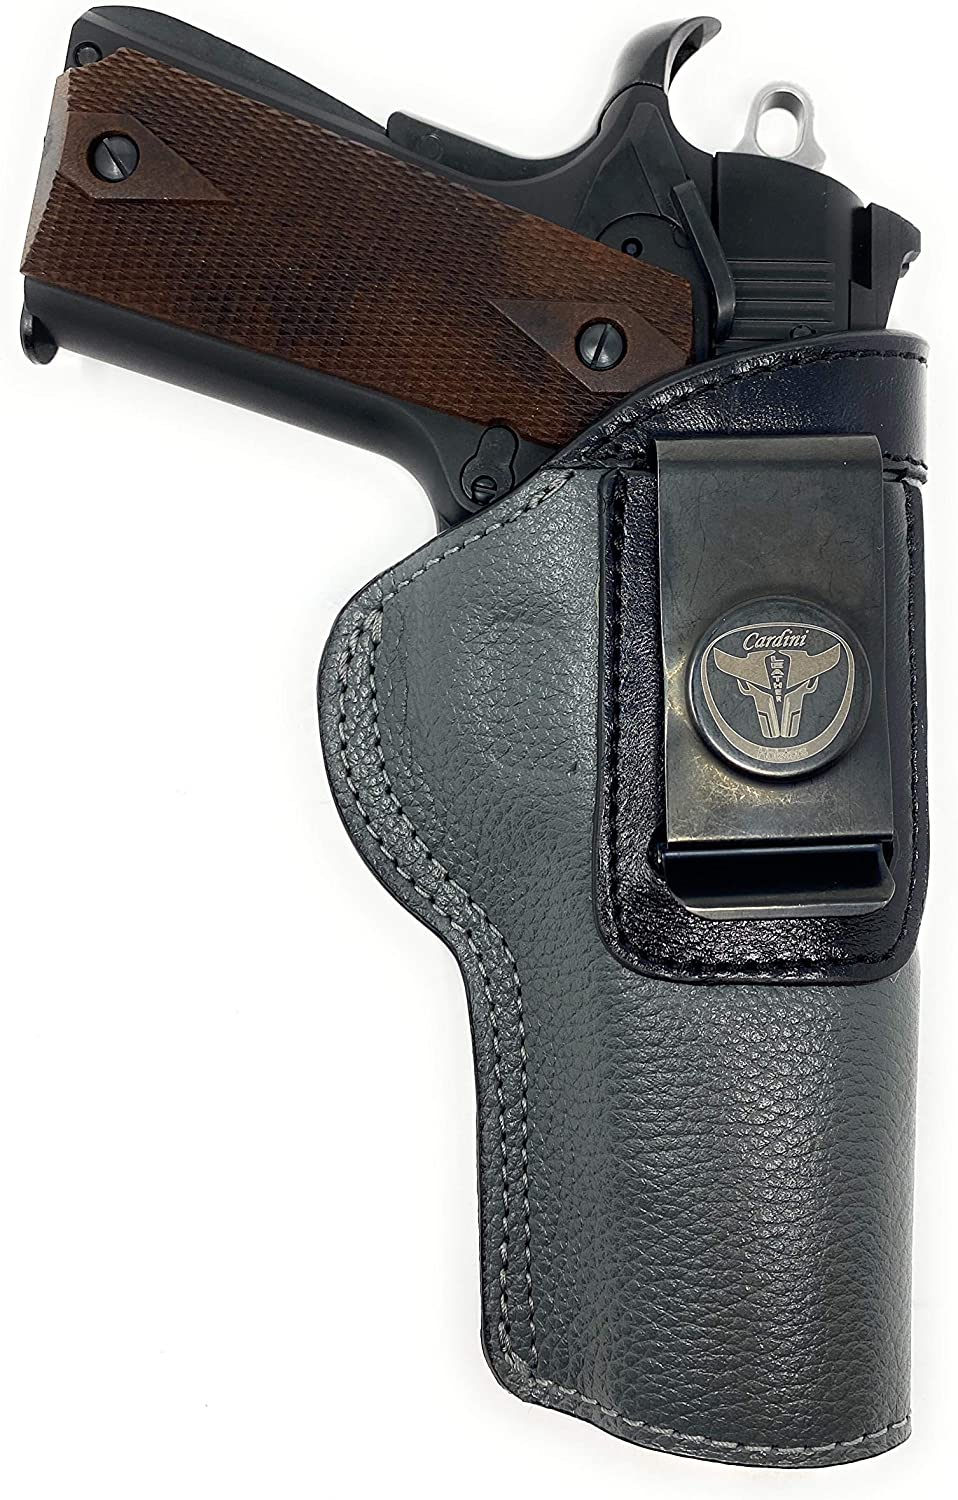 Cardini Leather - IWB Holster Fits Regular store Most Handguns Weekly update Style 1911